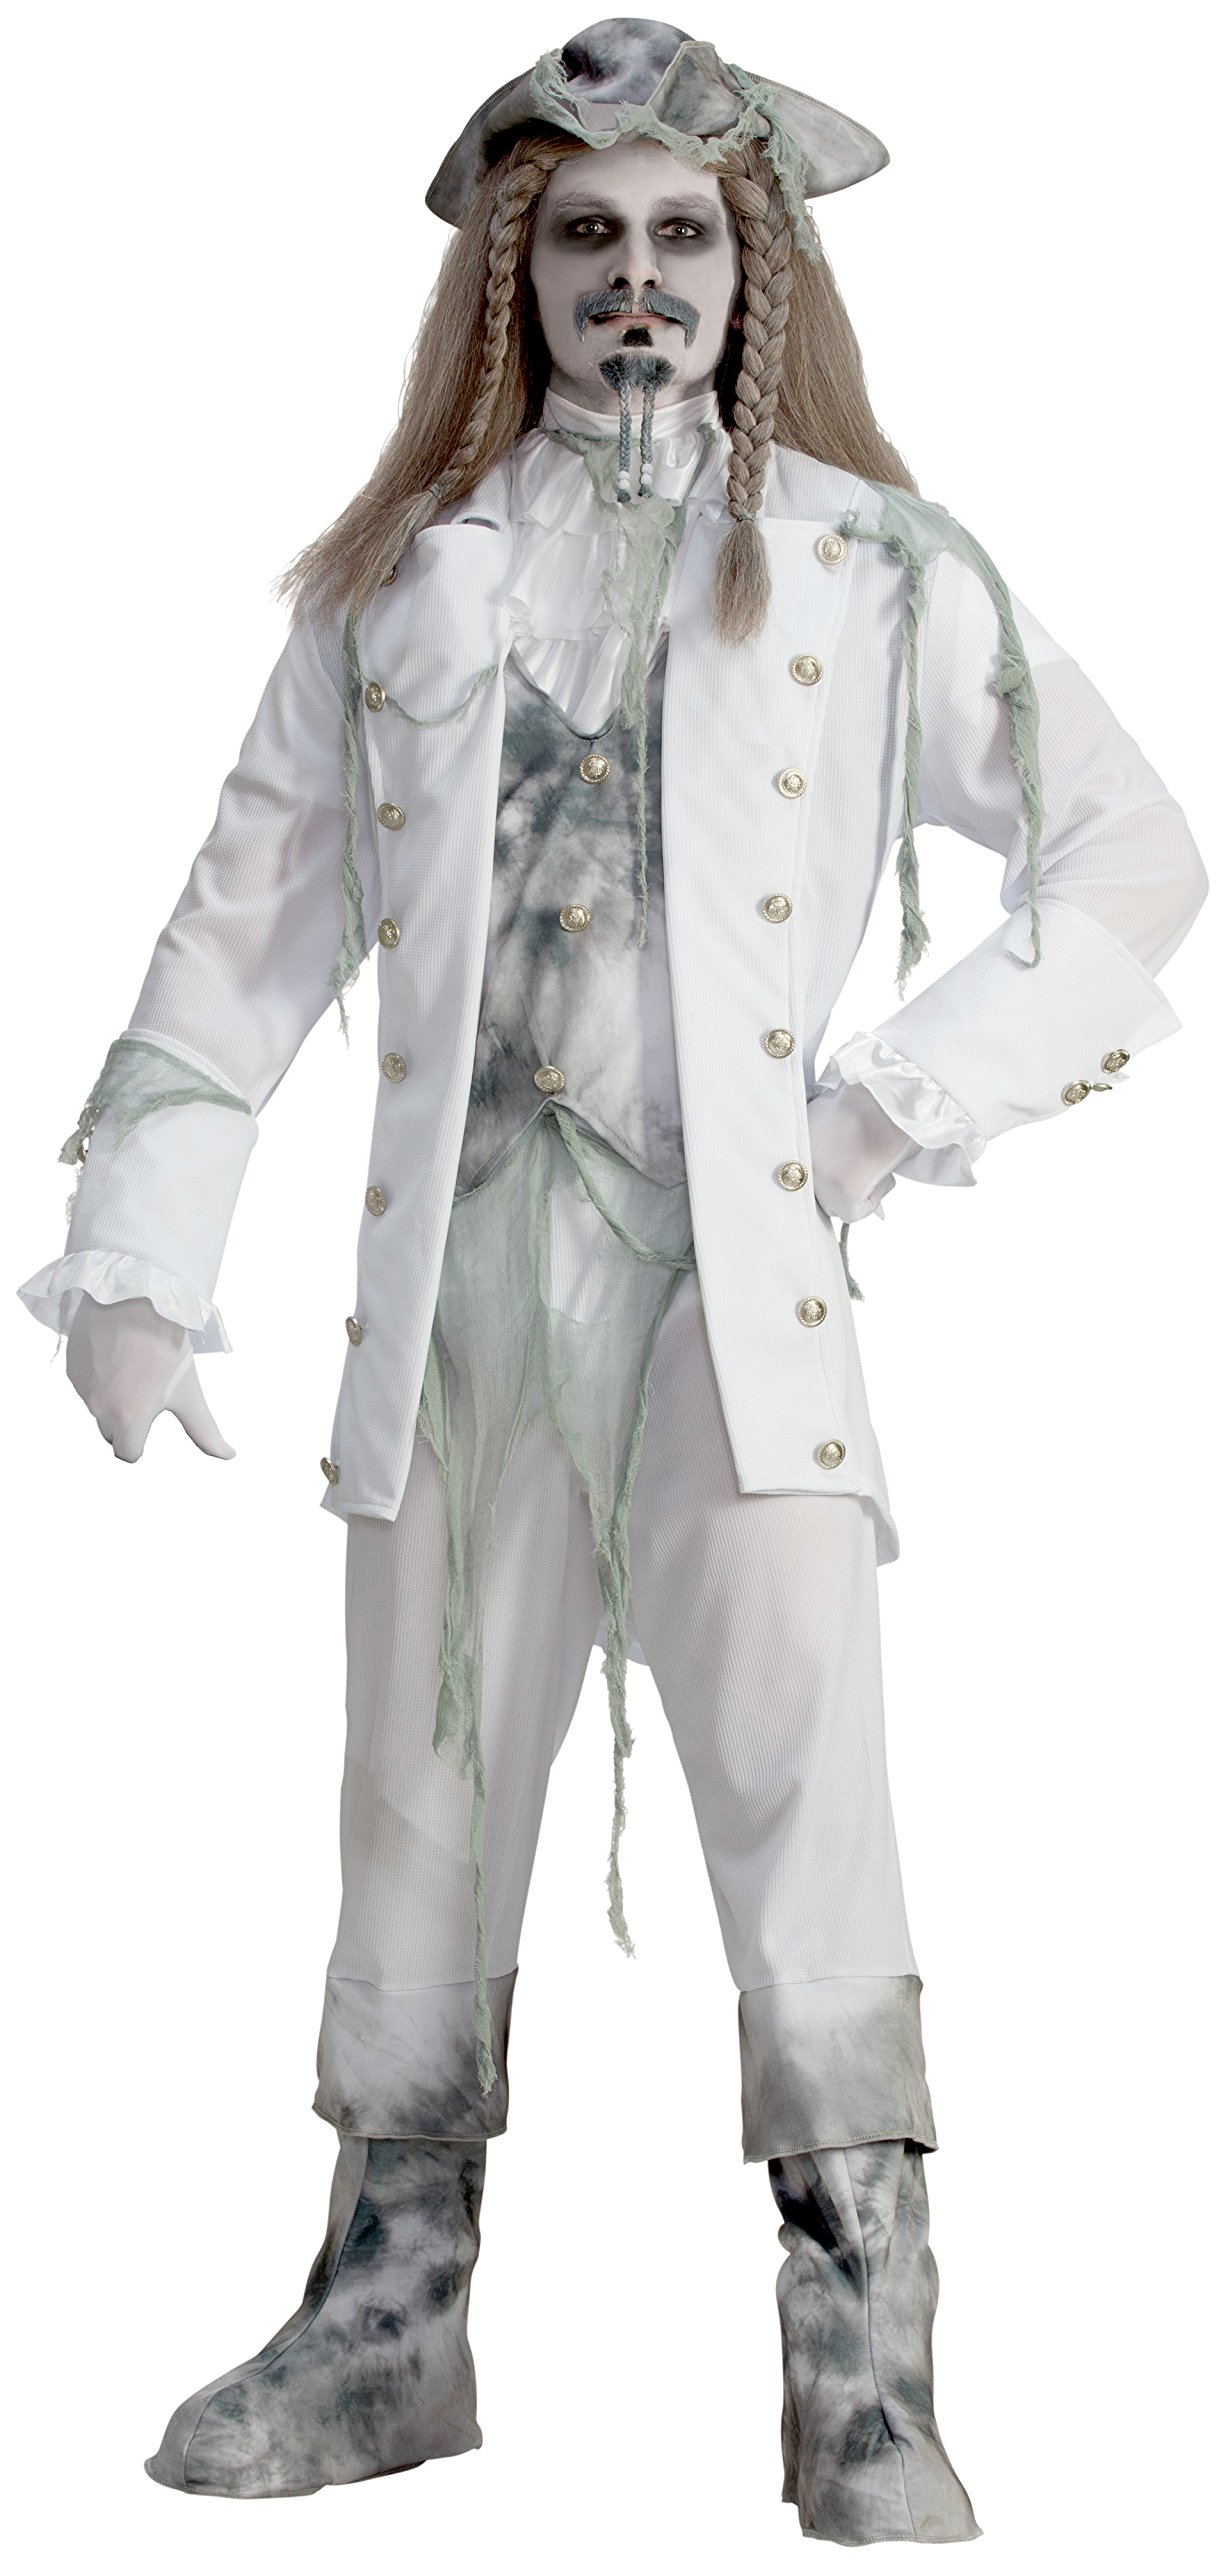 Forum Novelties Men's Ghost Captain Costume, White/Gray, One Size